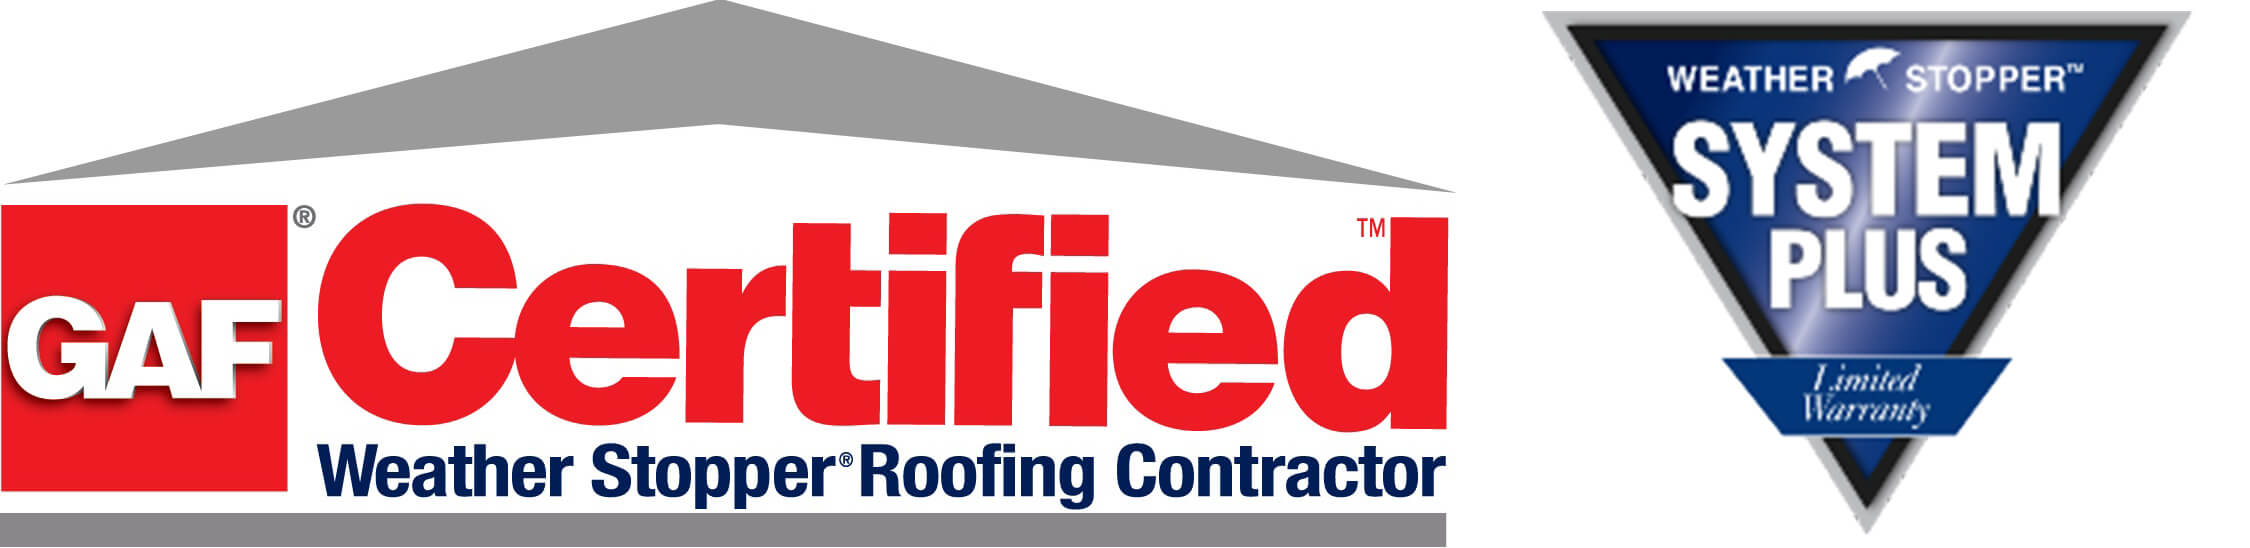 aq contracting GAF certified and weather system plus warranty logos